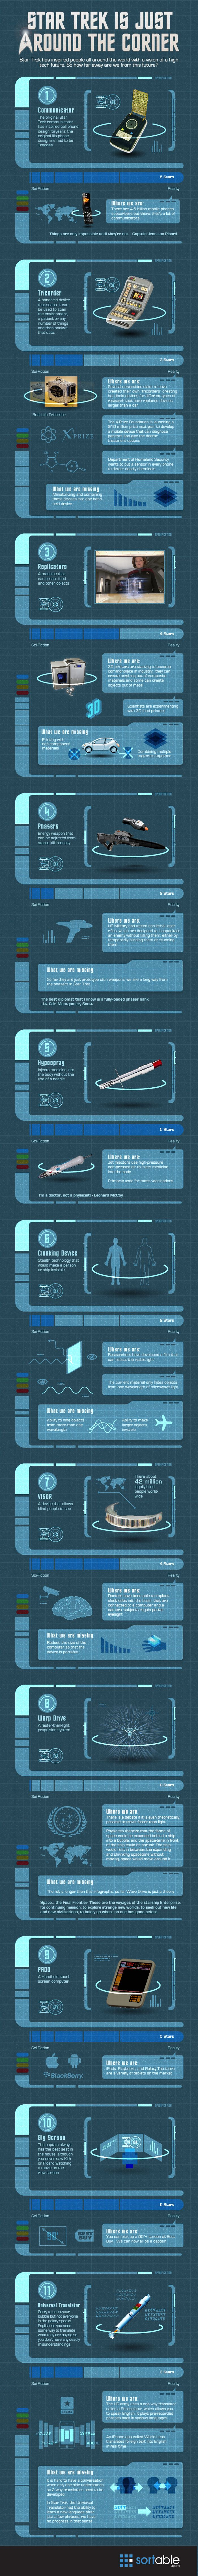 Star Trek is Just Around the Corner (infographic)